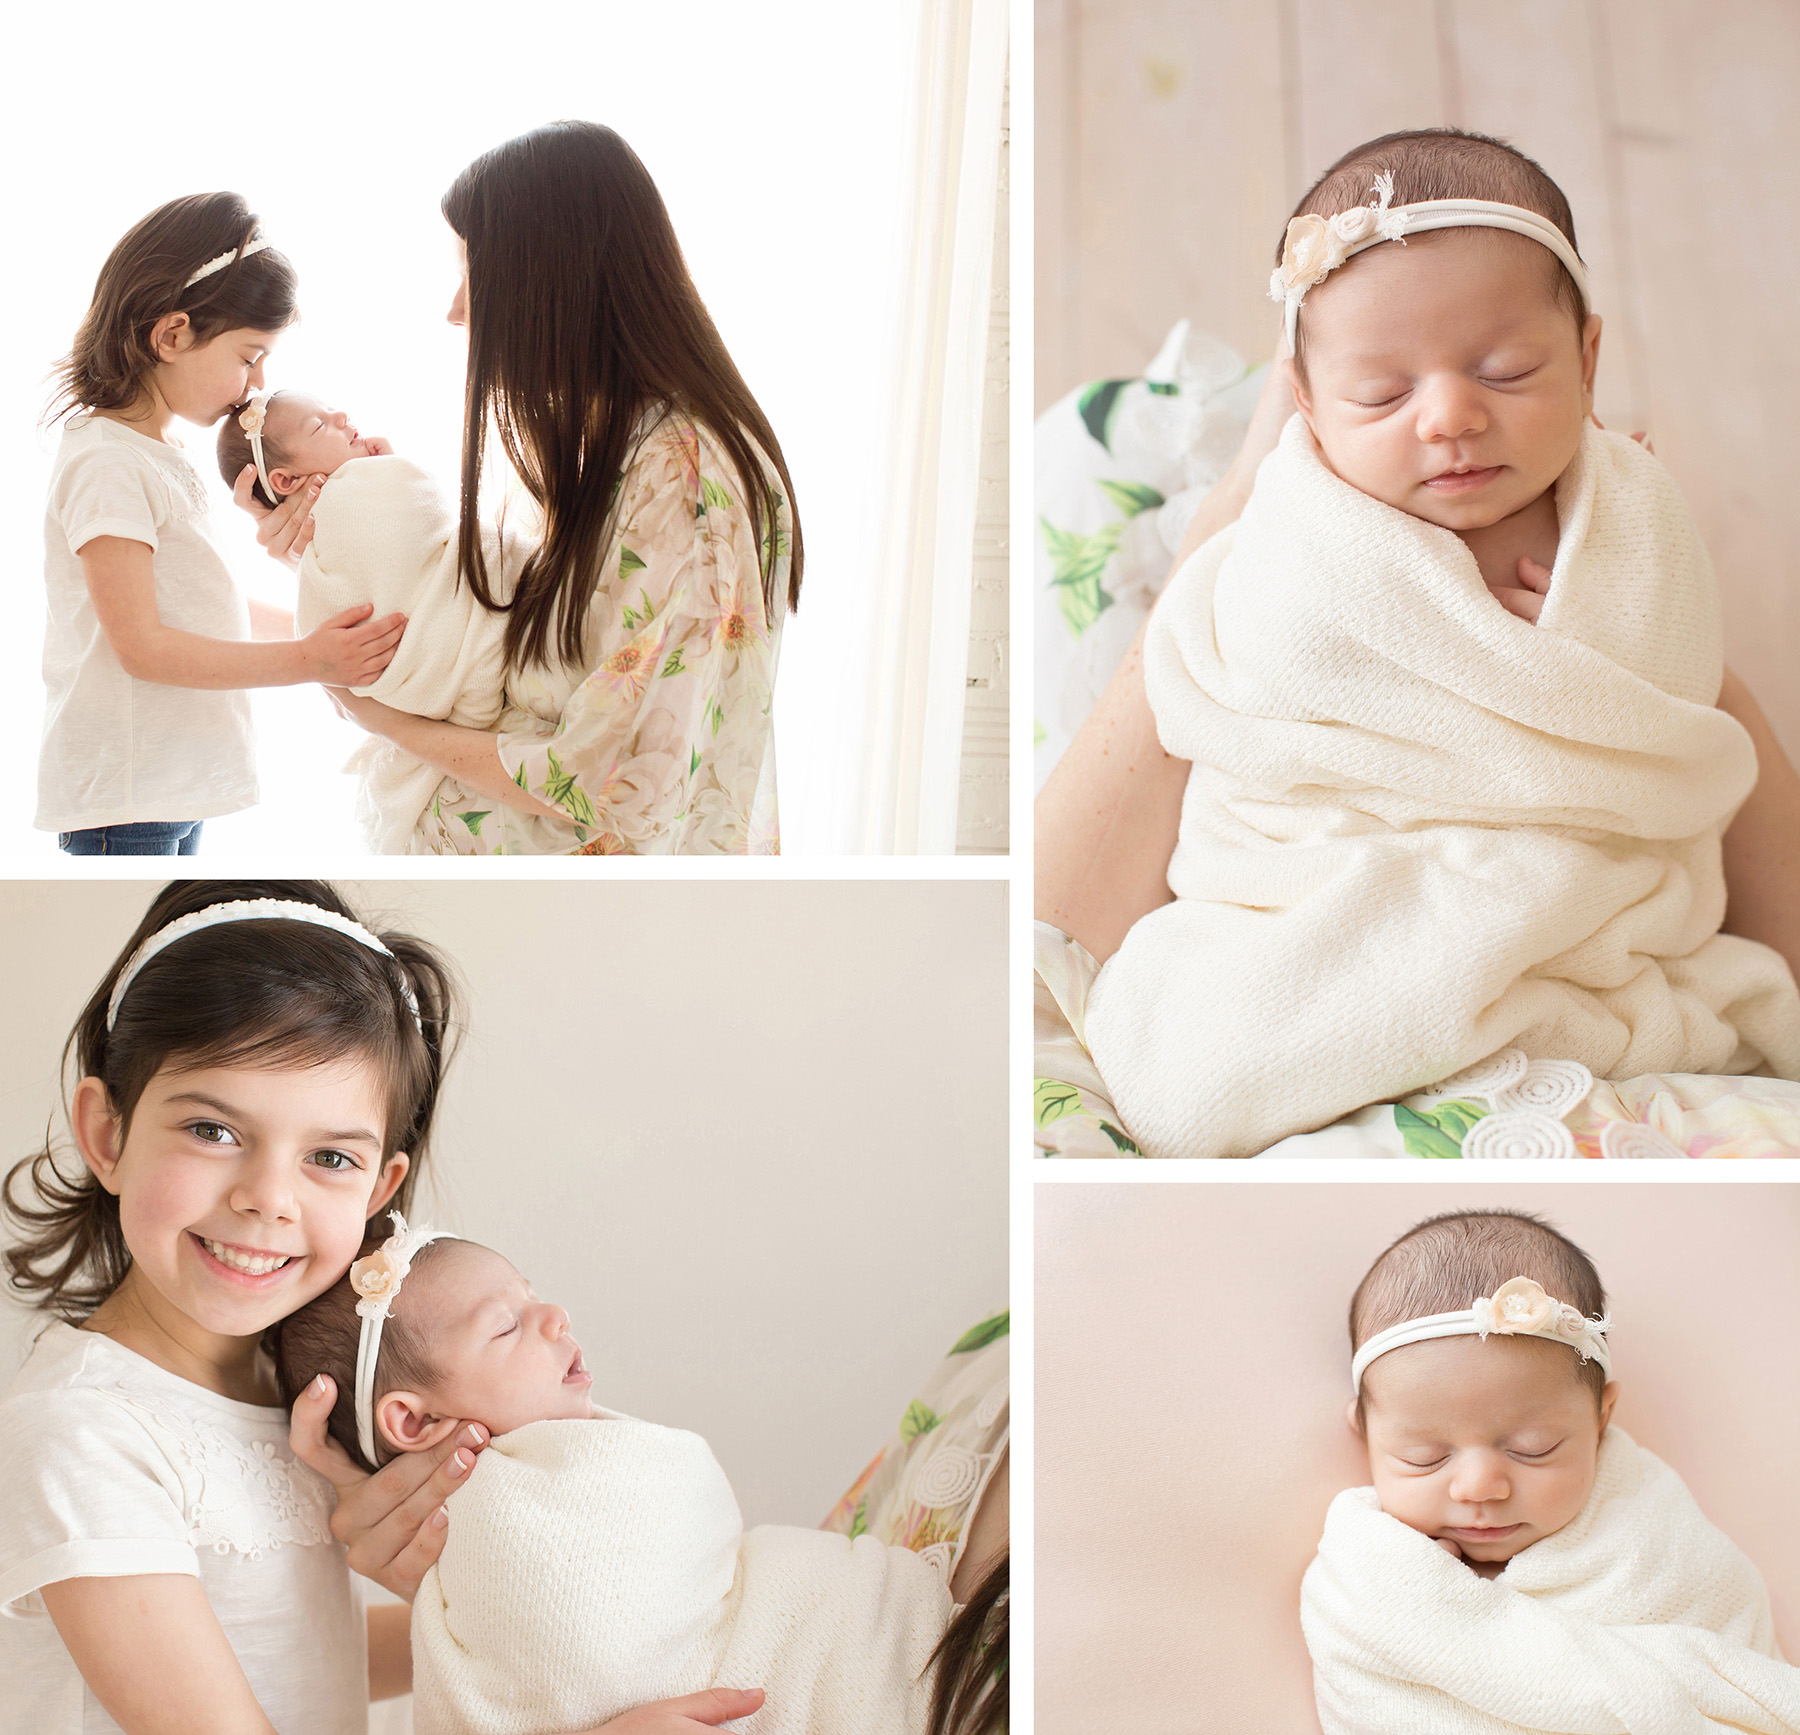 Newborn Photographer Louisville KY | Julie Brock Photography | Newborn Photo with Big Sister for Photo Album.jpg